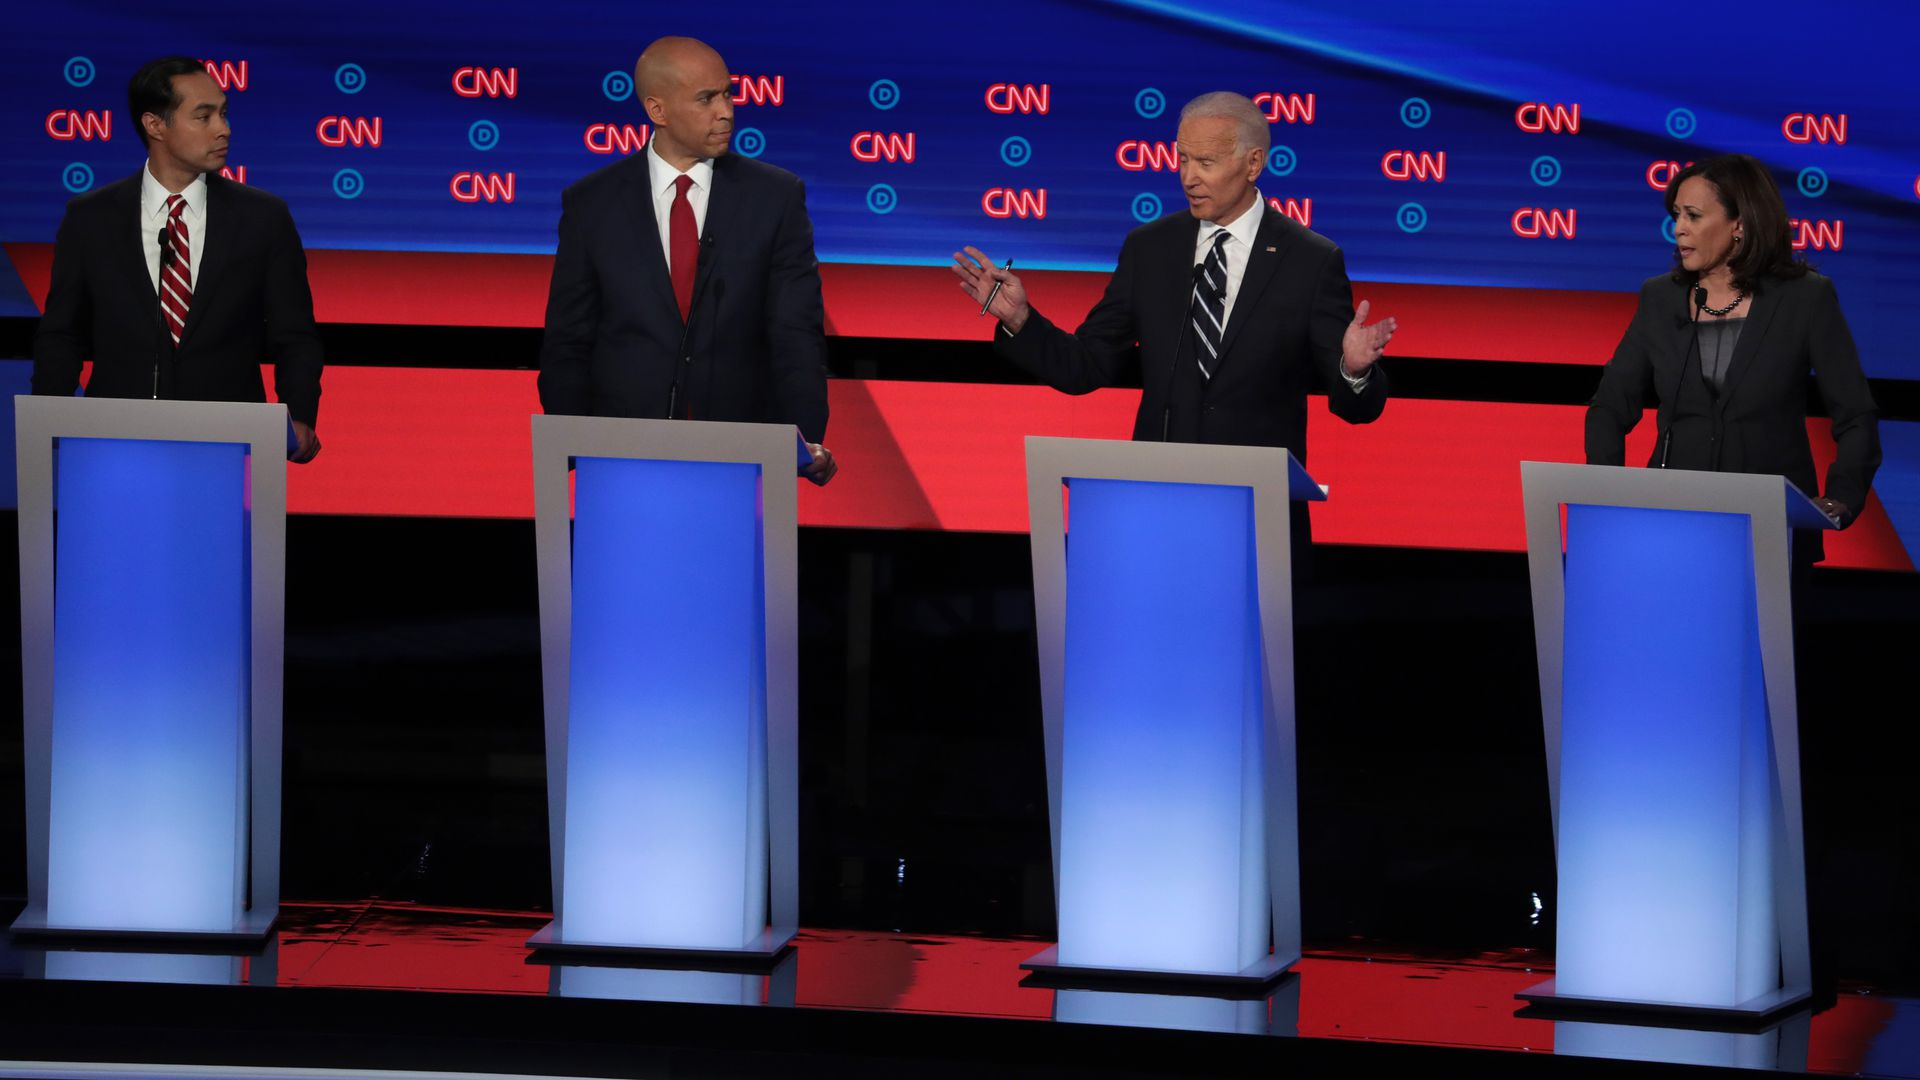 In this image, Castro, Booker, Biden, and Harris stand at podiums on the CNN stage on debate night.